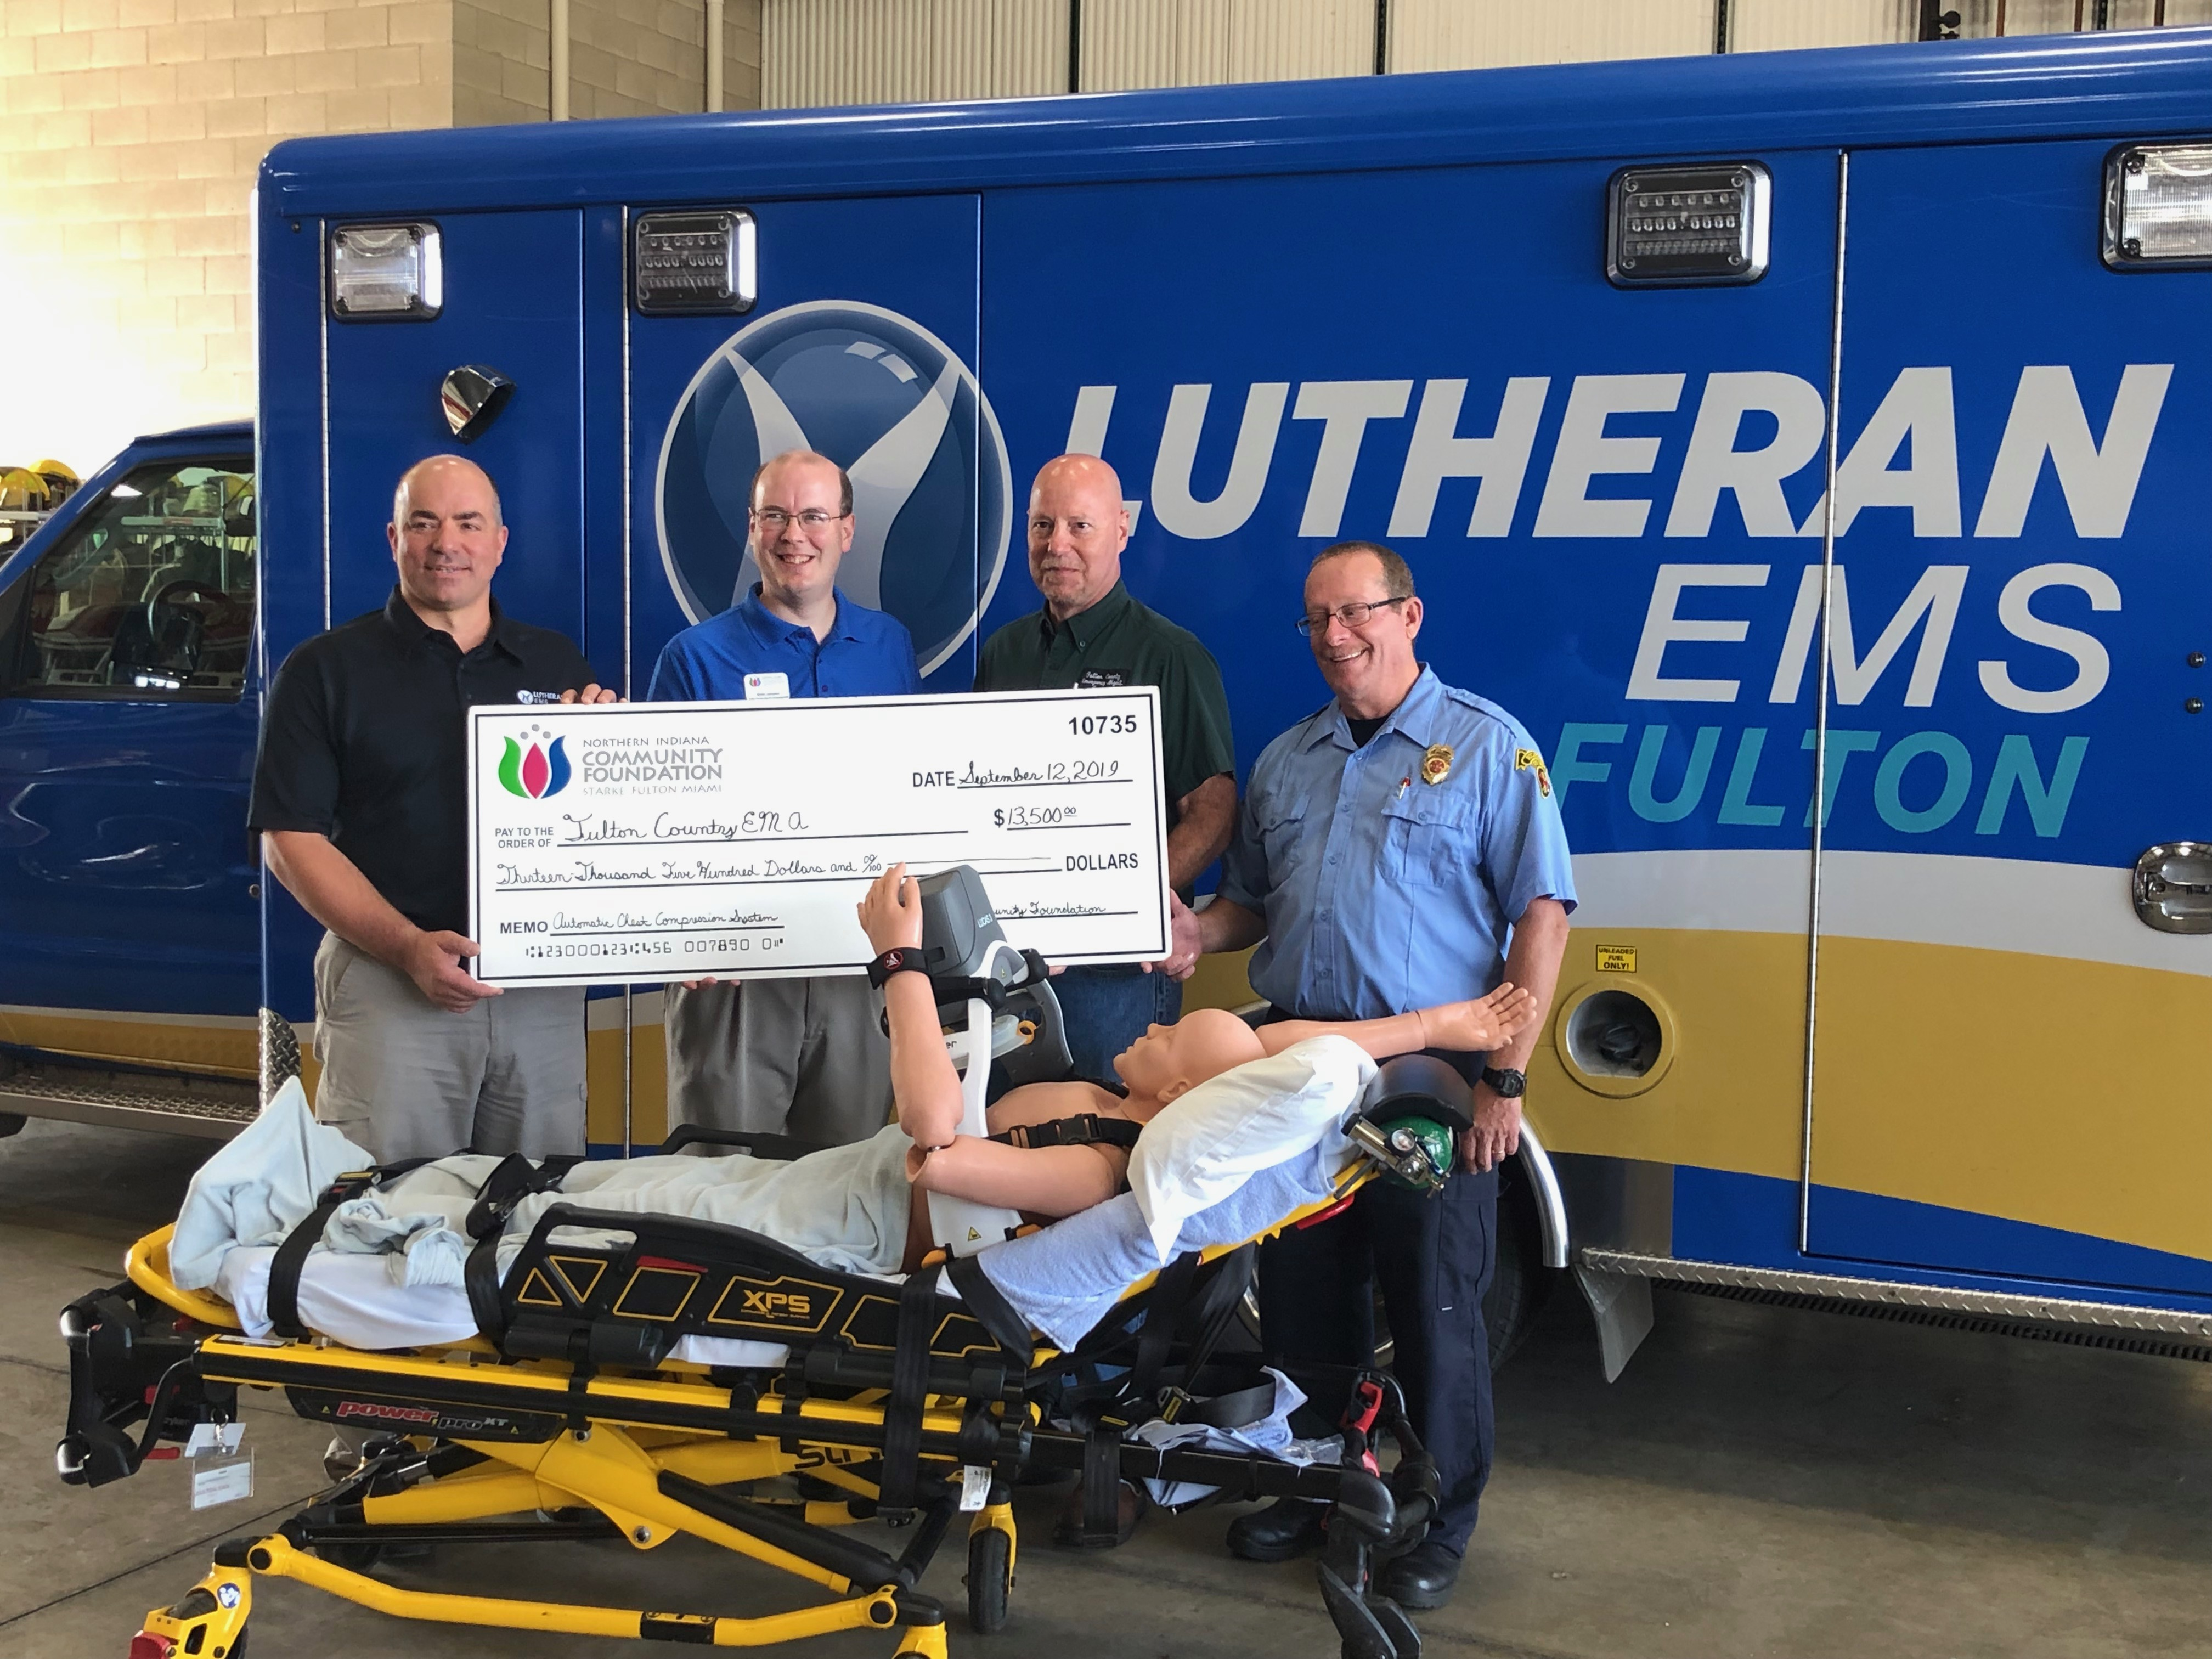 Northern Indiana Community Foundation awards grant to Fulton County EMA & Lutheran EMS